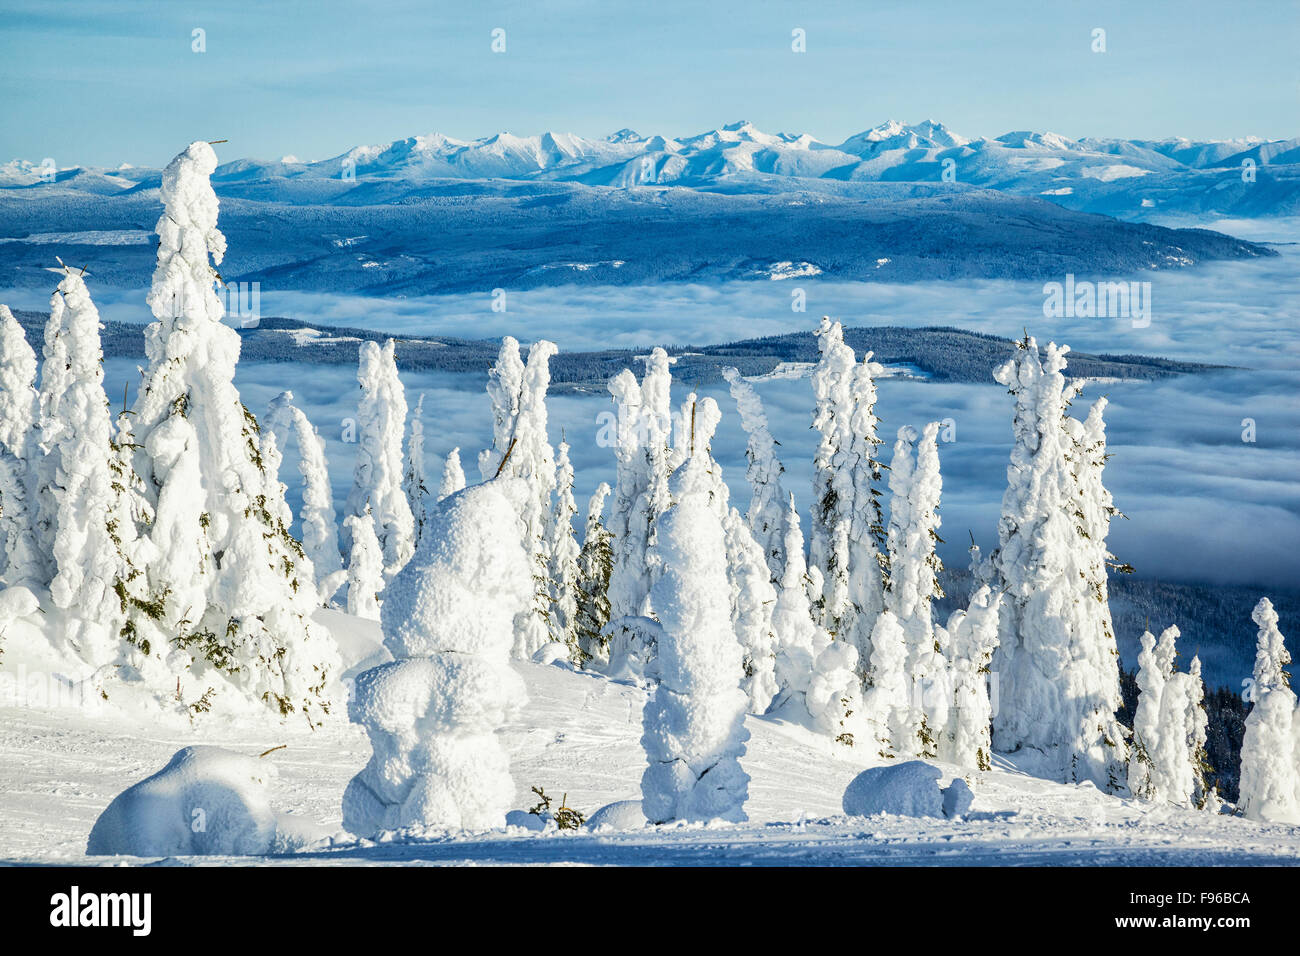 Snowcovered trees on Silver Star Mountain, Monashee Mountains in the distance, British Columbia, Canada - Stock Image